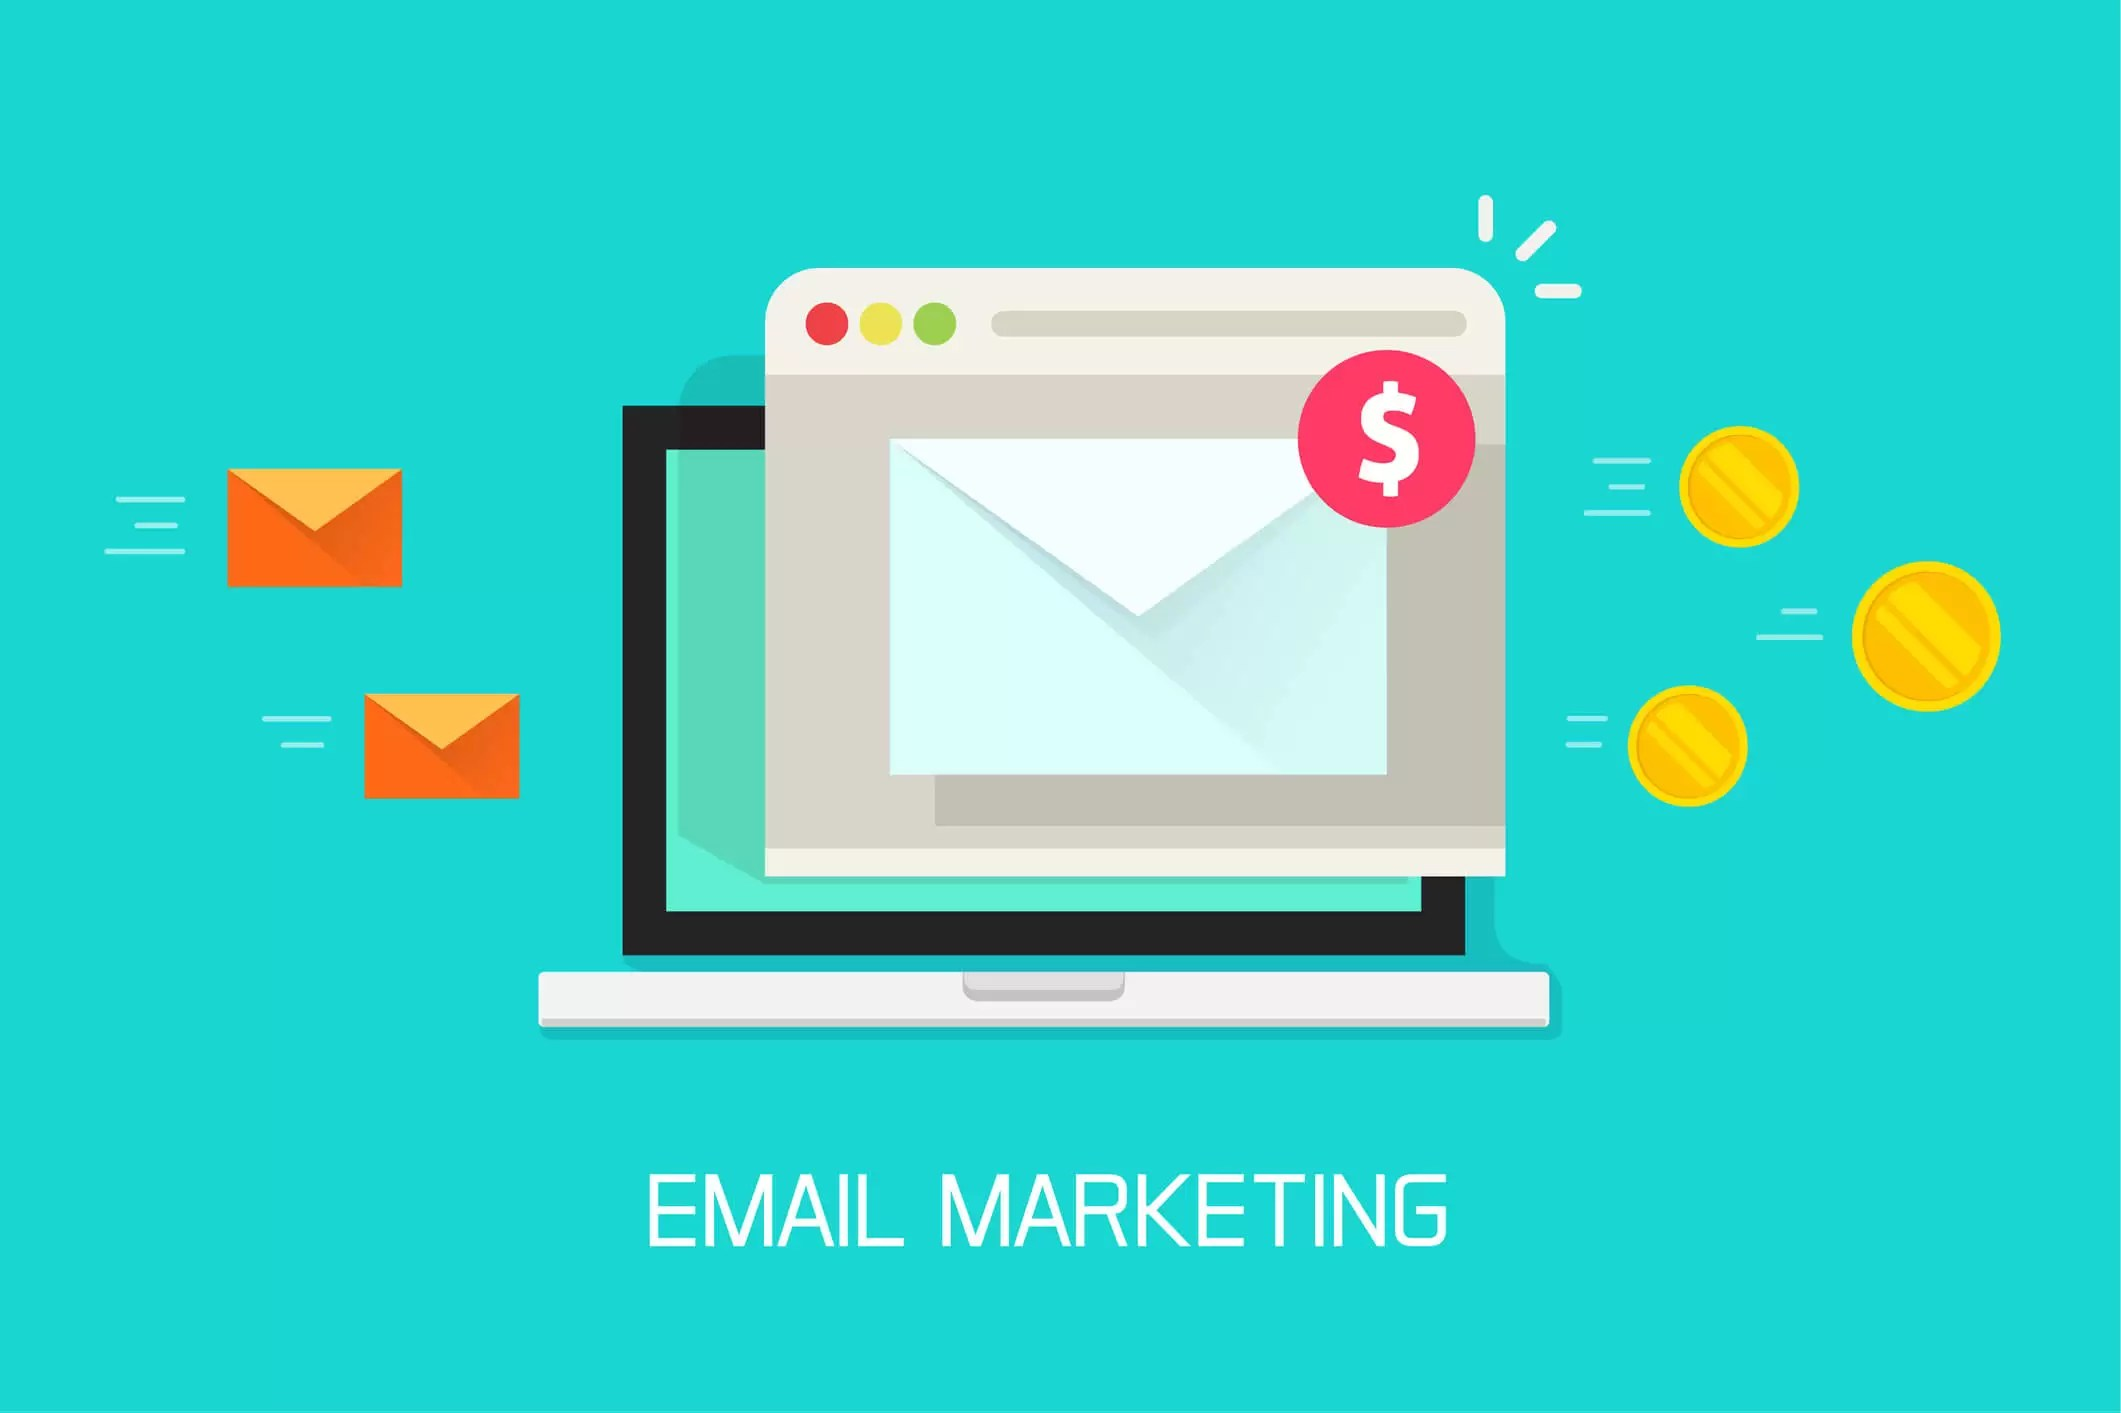 This graphic depicts a laptop with an email marketing window and dollar signs.